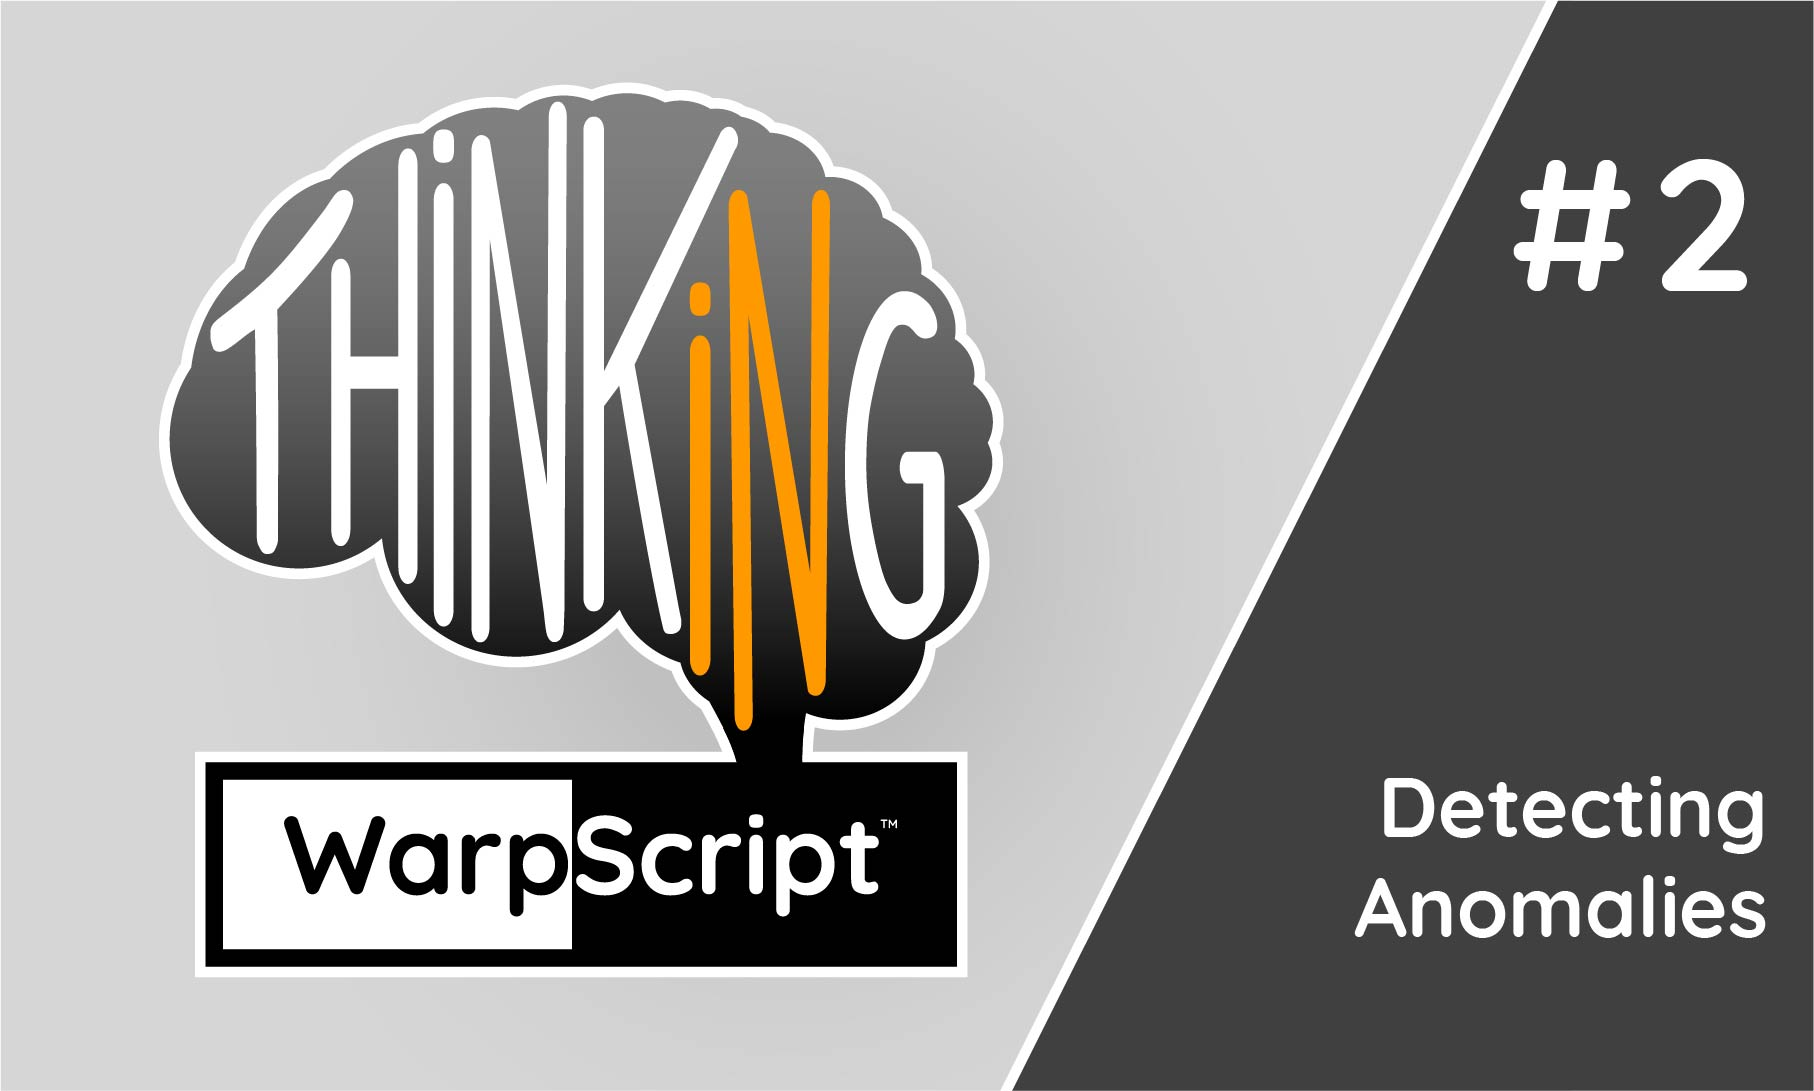 Thinking in Warpscript : Detecting anomalies